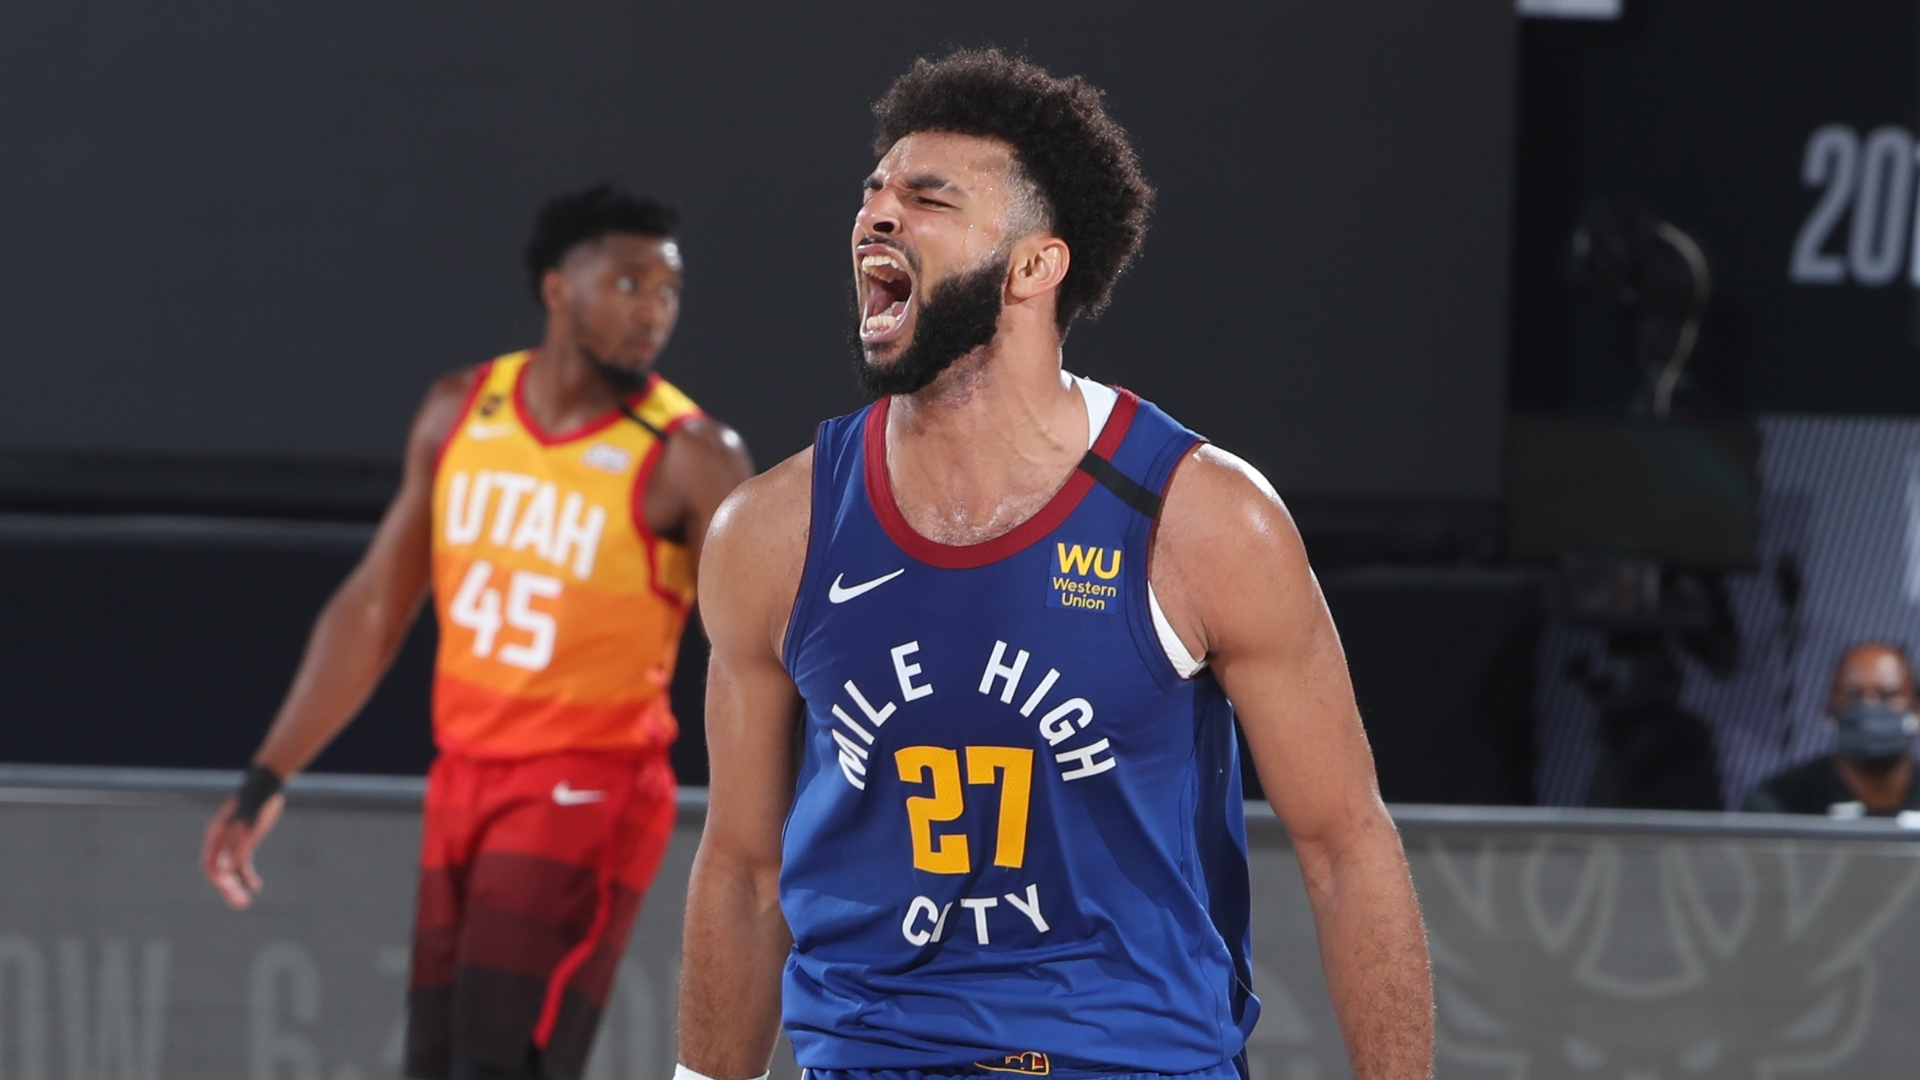 NBA Playoffs 2020: Jamal Murray explodes for 50, helps Nuggets force Game 7 vs. Jazz | NBA.com Canada | The official site of the NBA